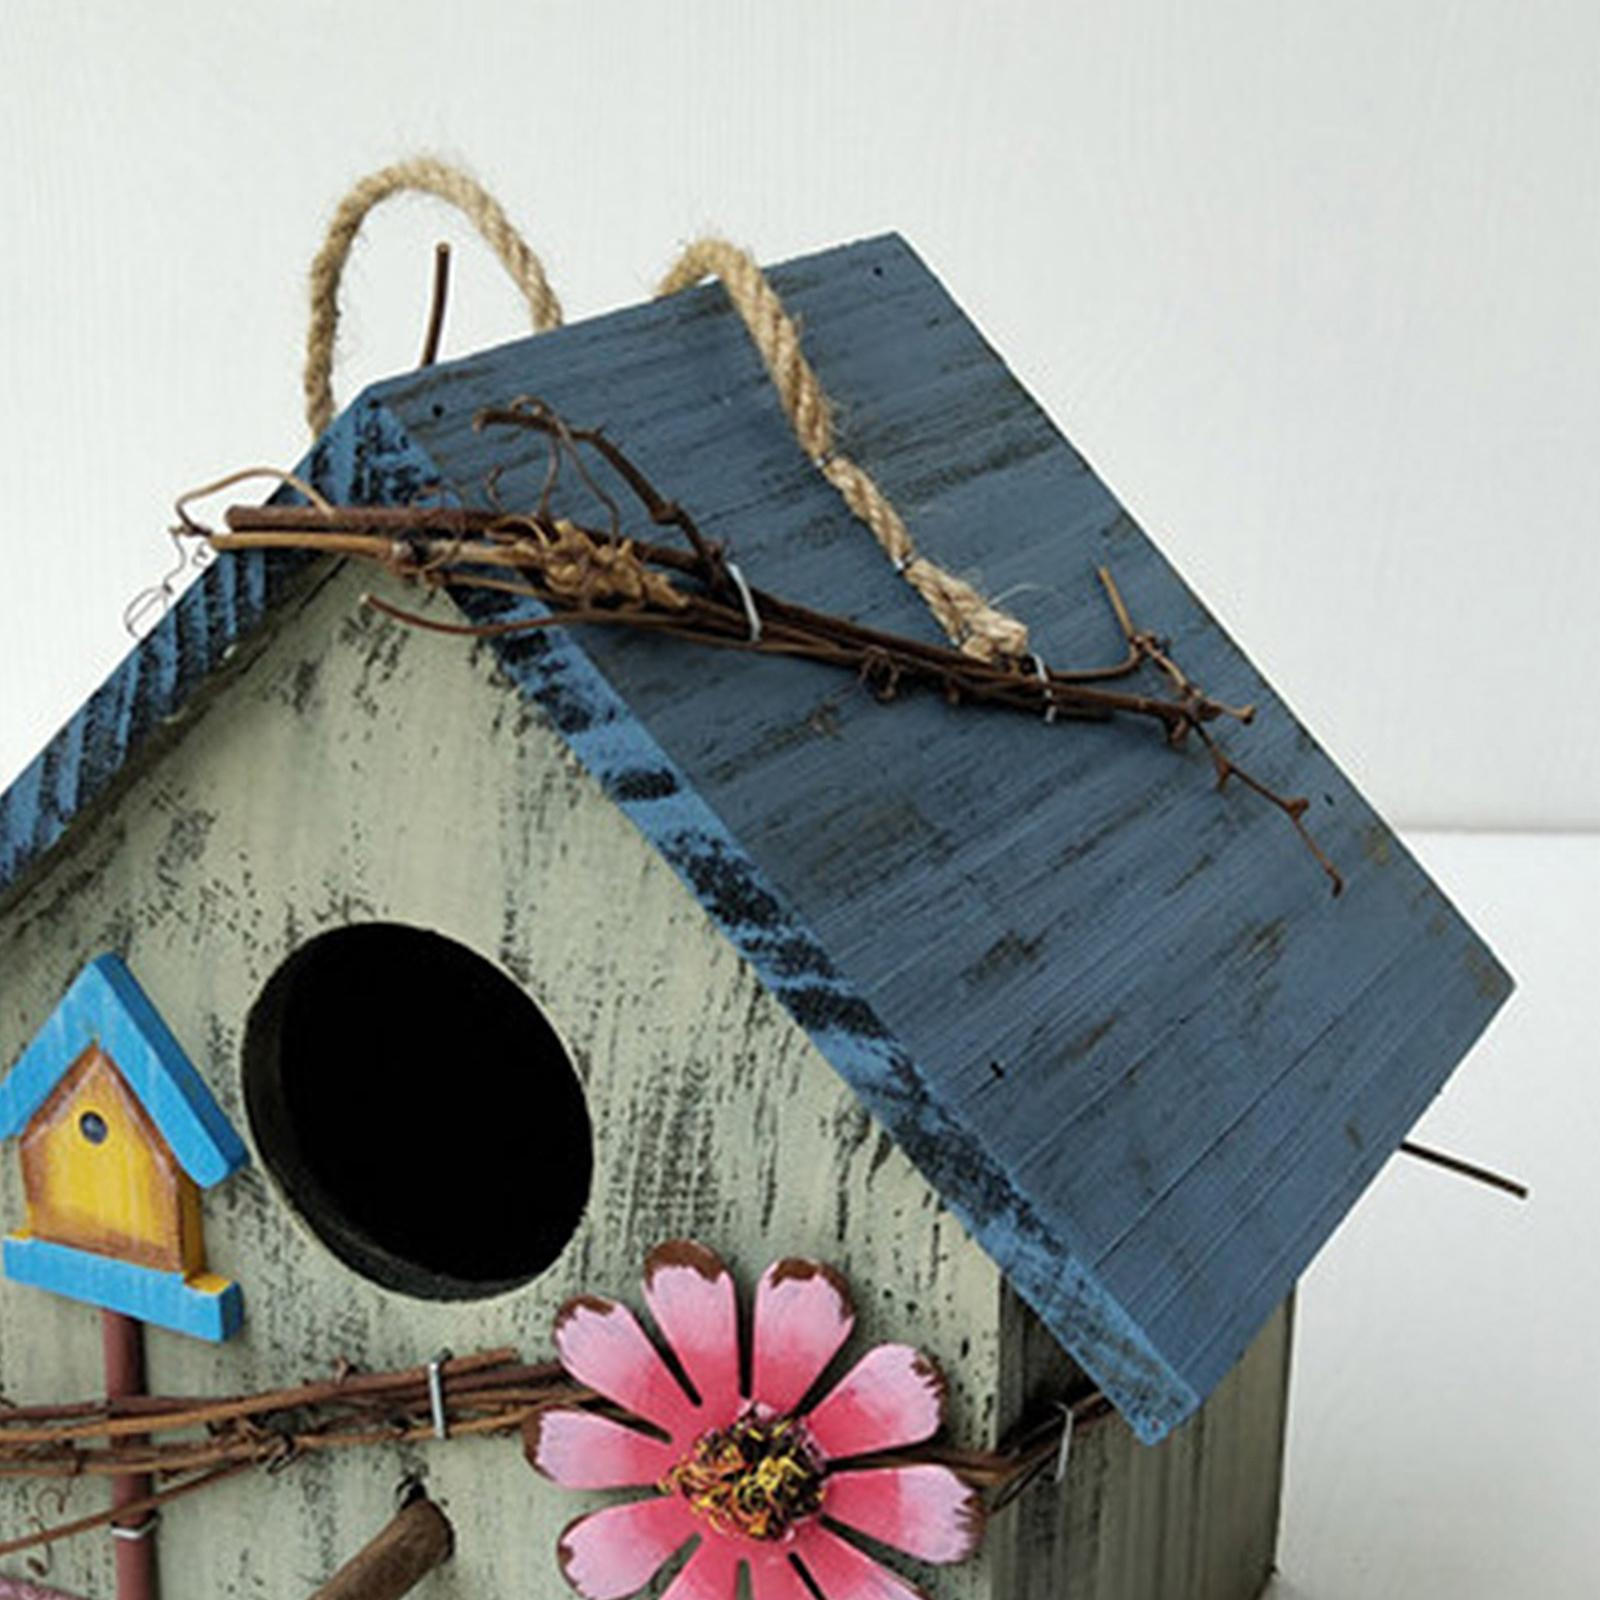 thumbnail 26 - Antique Hand Painted Wood Birdhouse Decorative Outdoor Bird House Garden